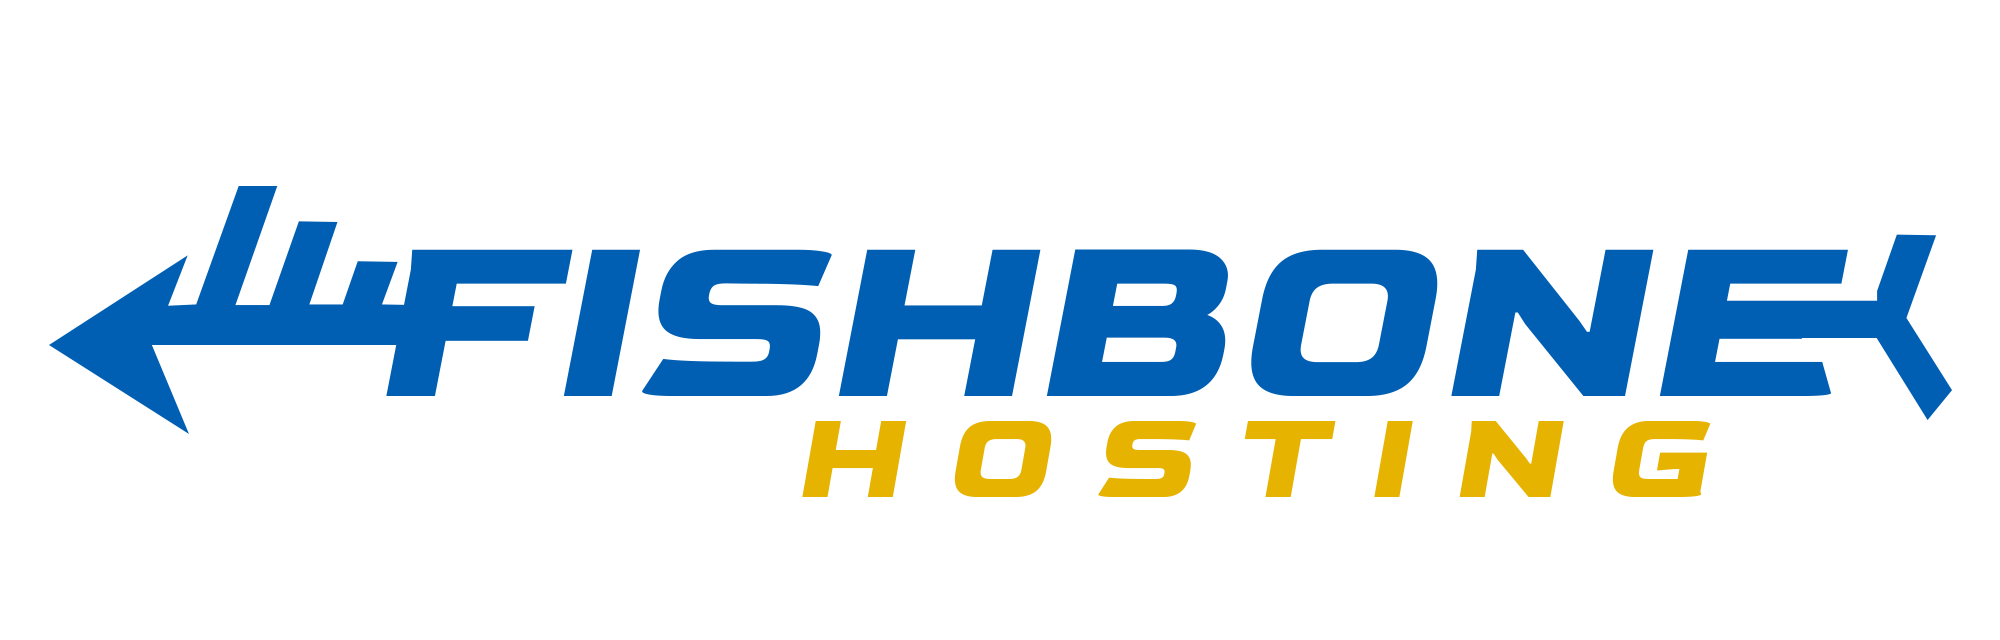 Fishbone Hosting